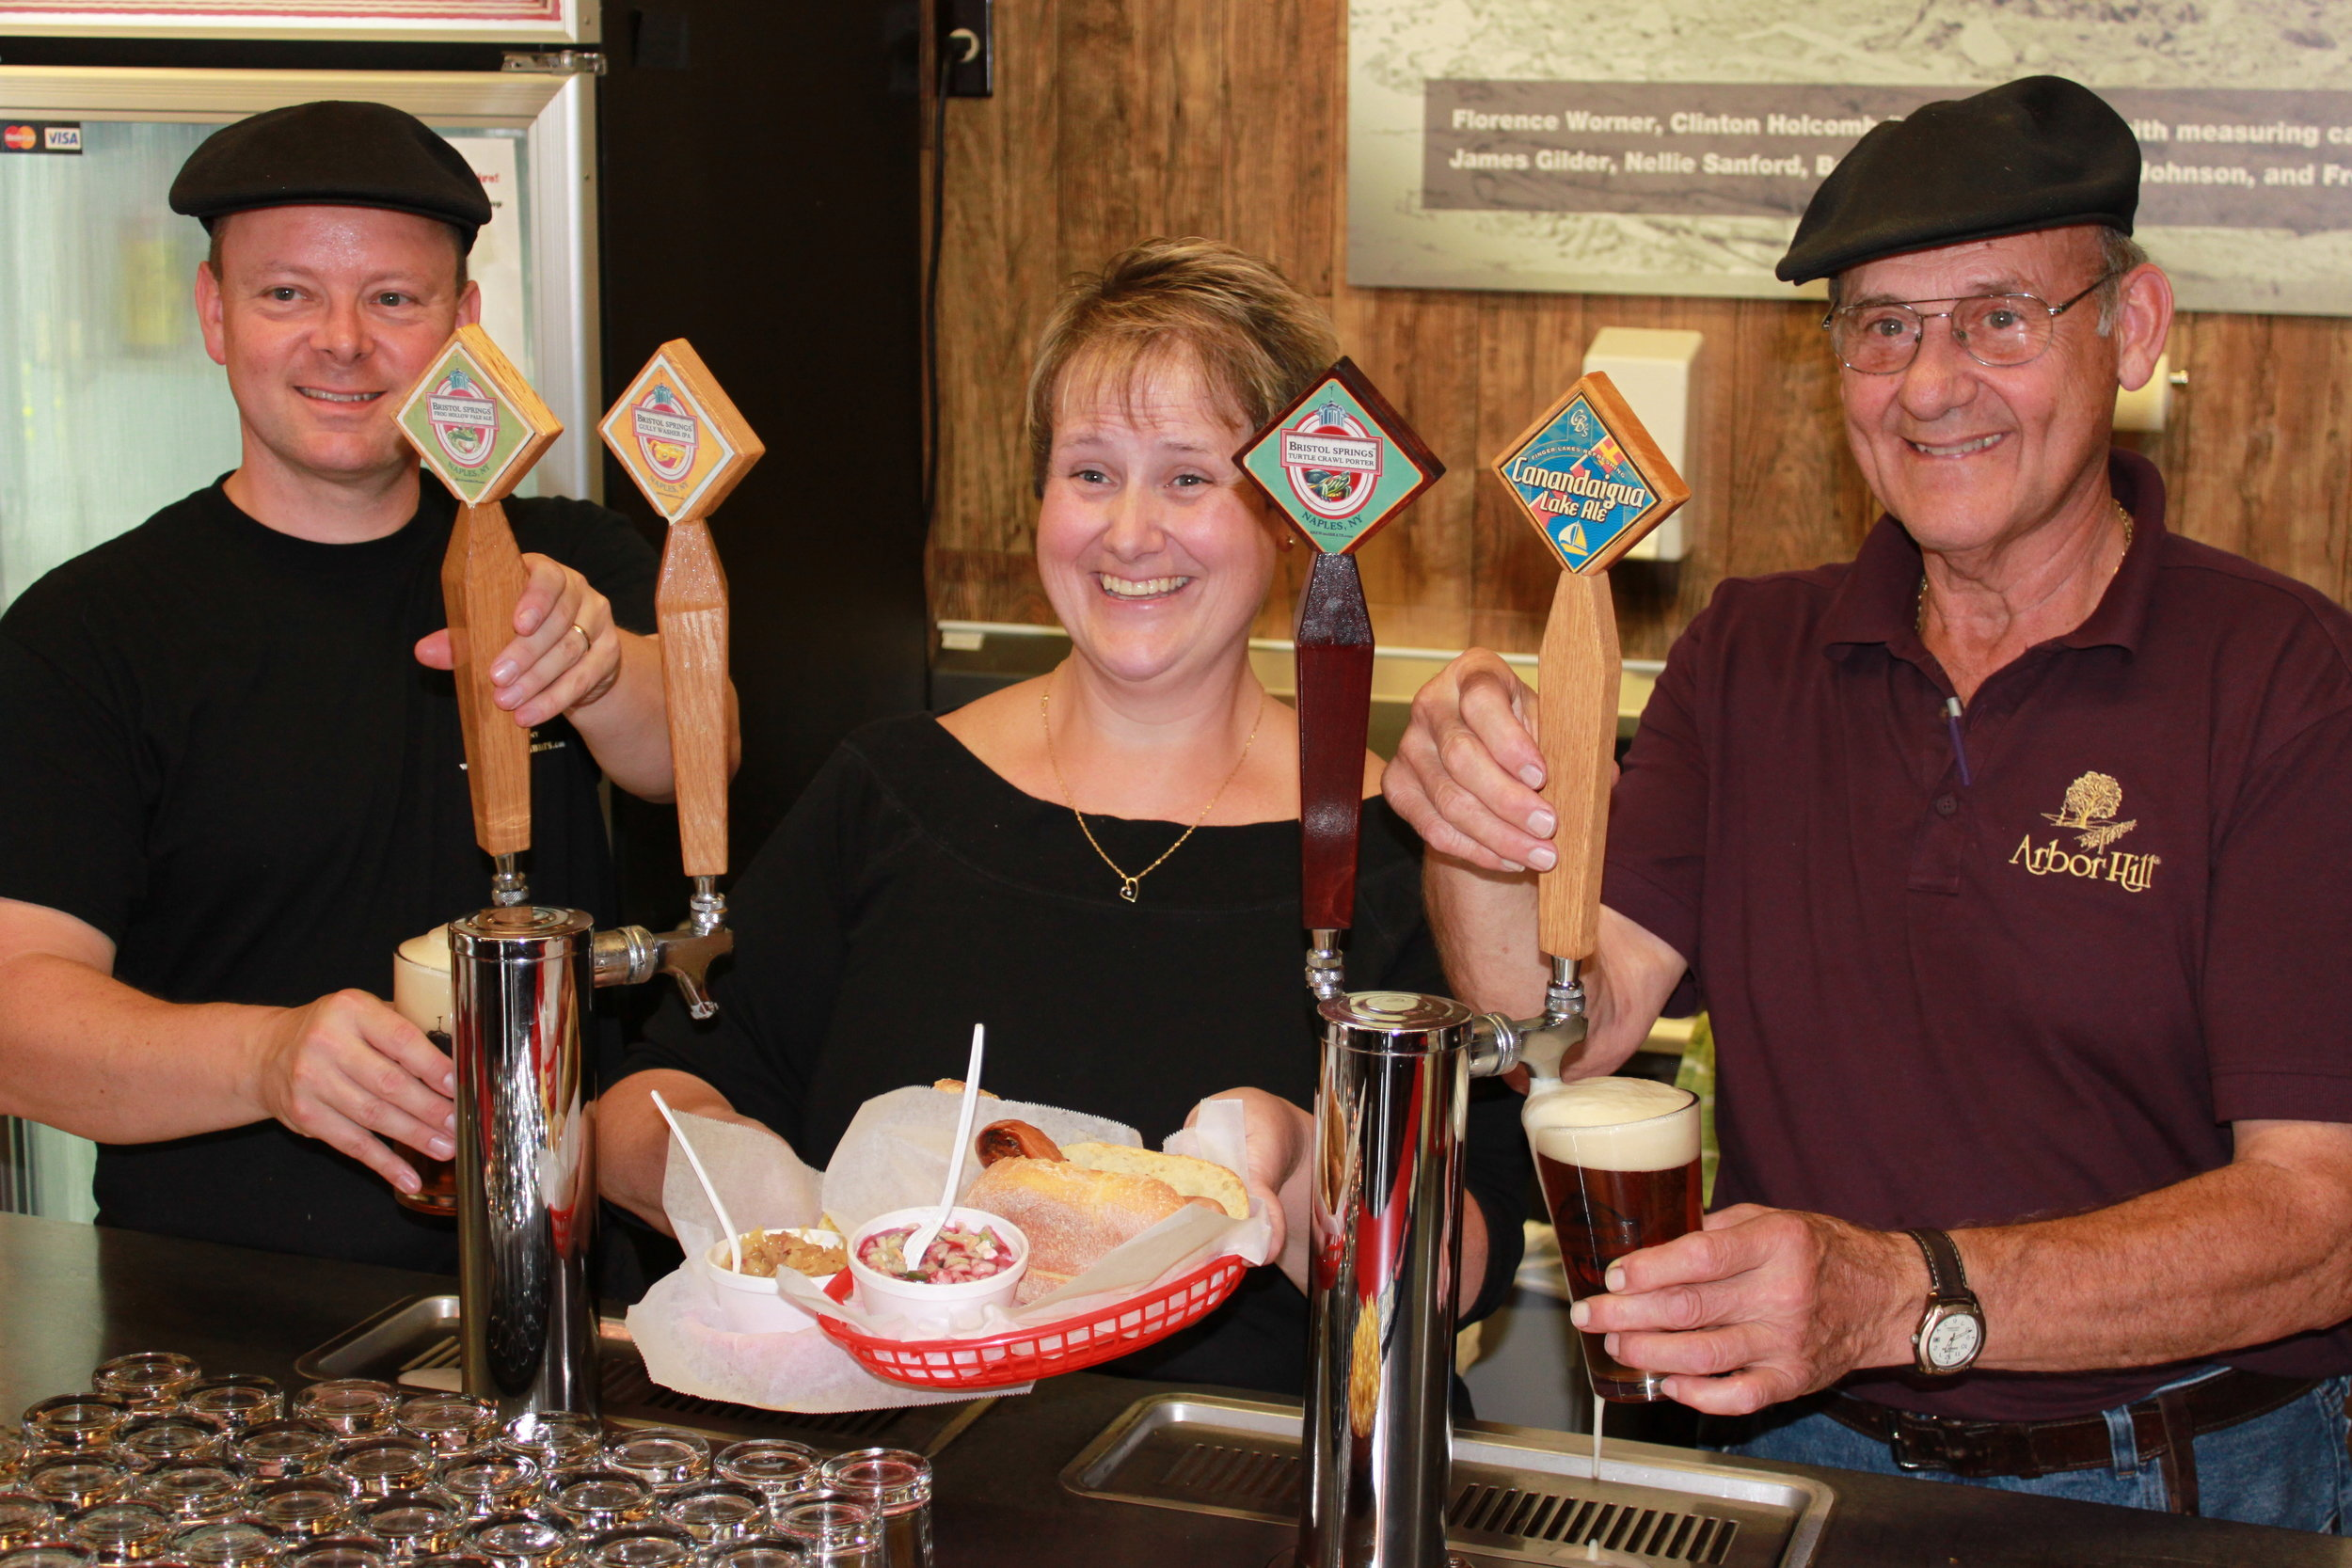 John French, Sherry Brahm-French and John Brahm behind the bar at Brew and Brats at Arbor Hill.